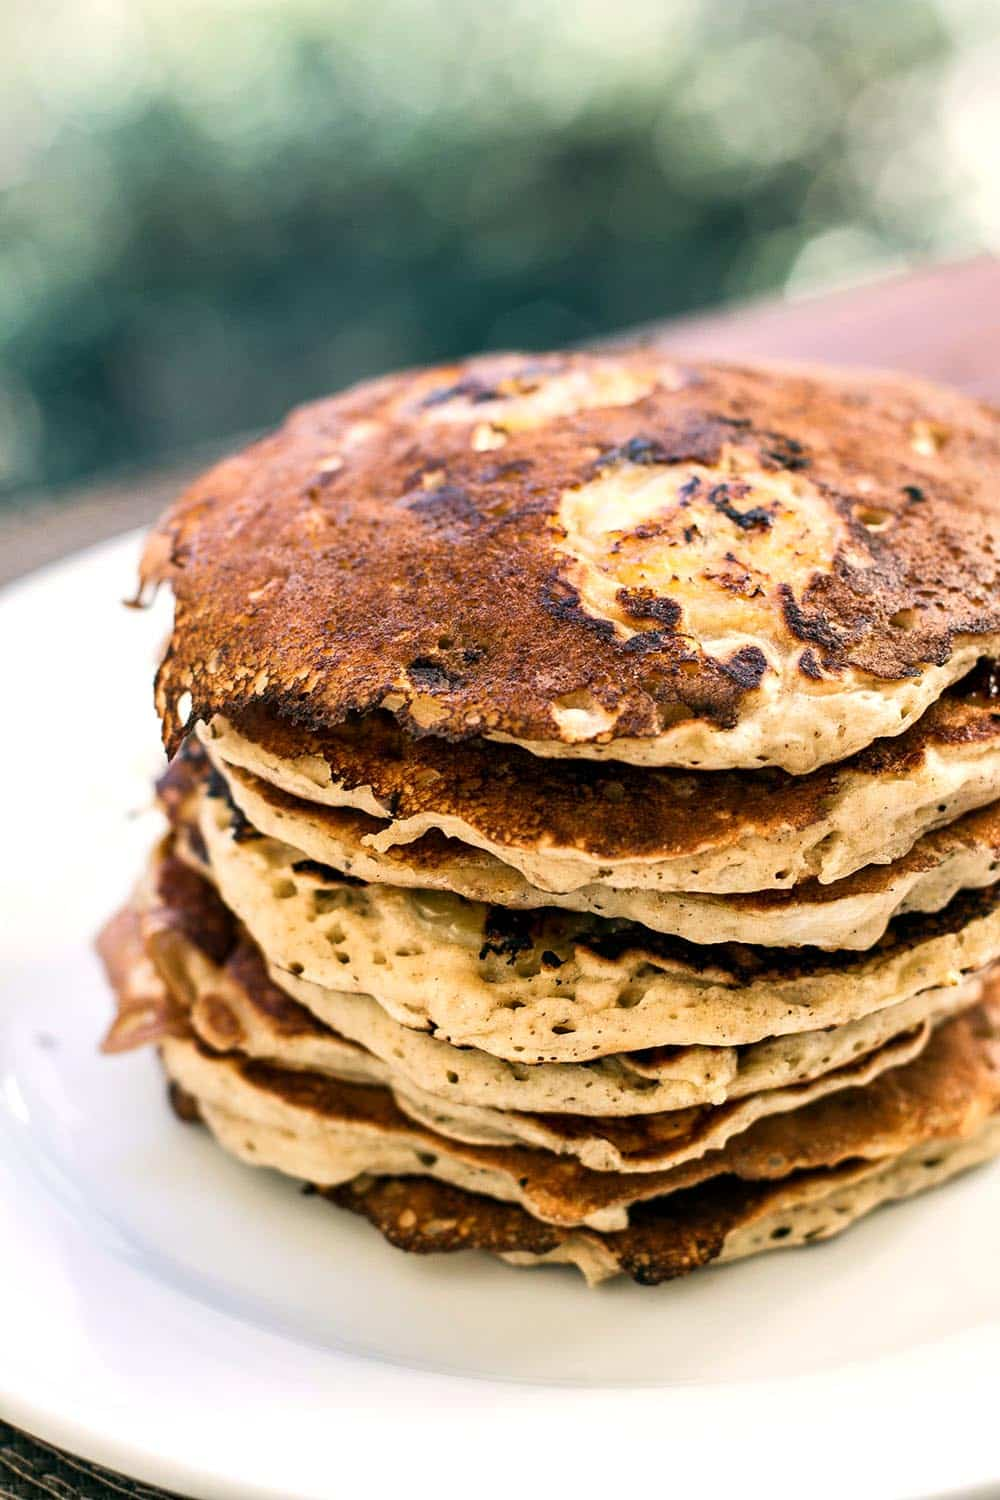 A stack of banana pancakes on a white plate